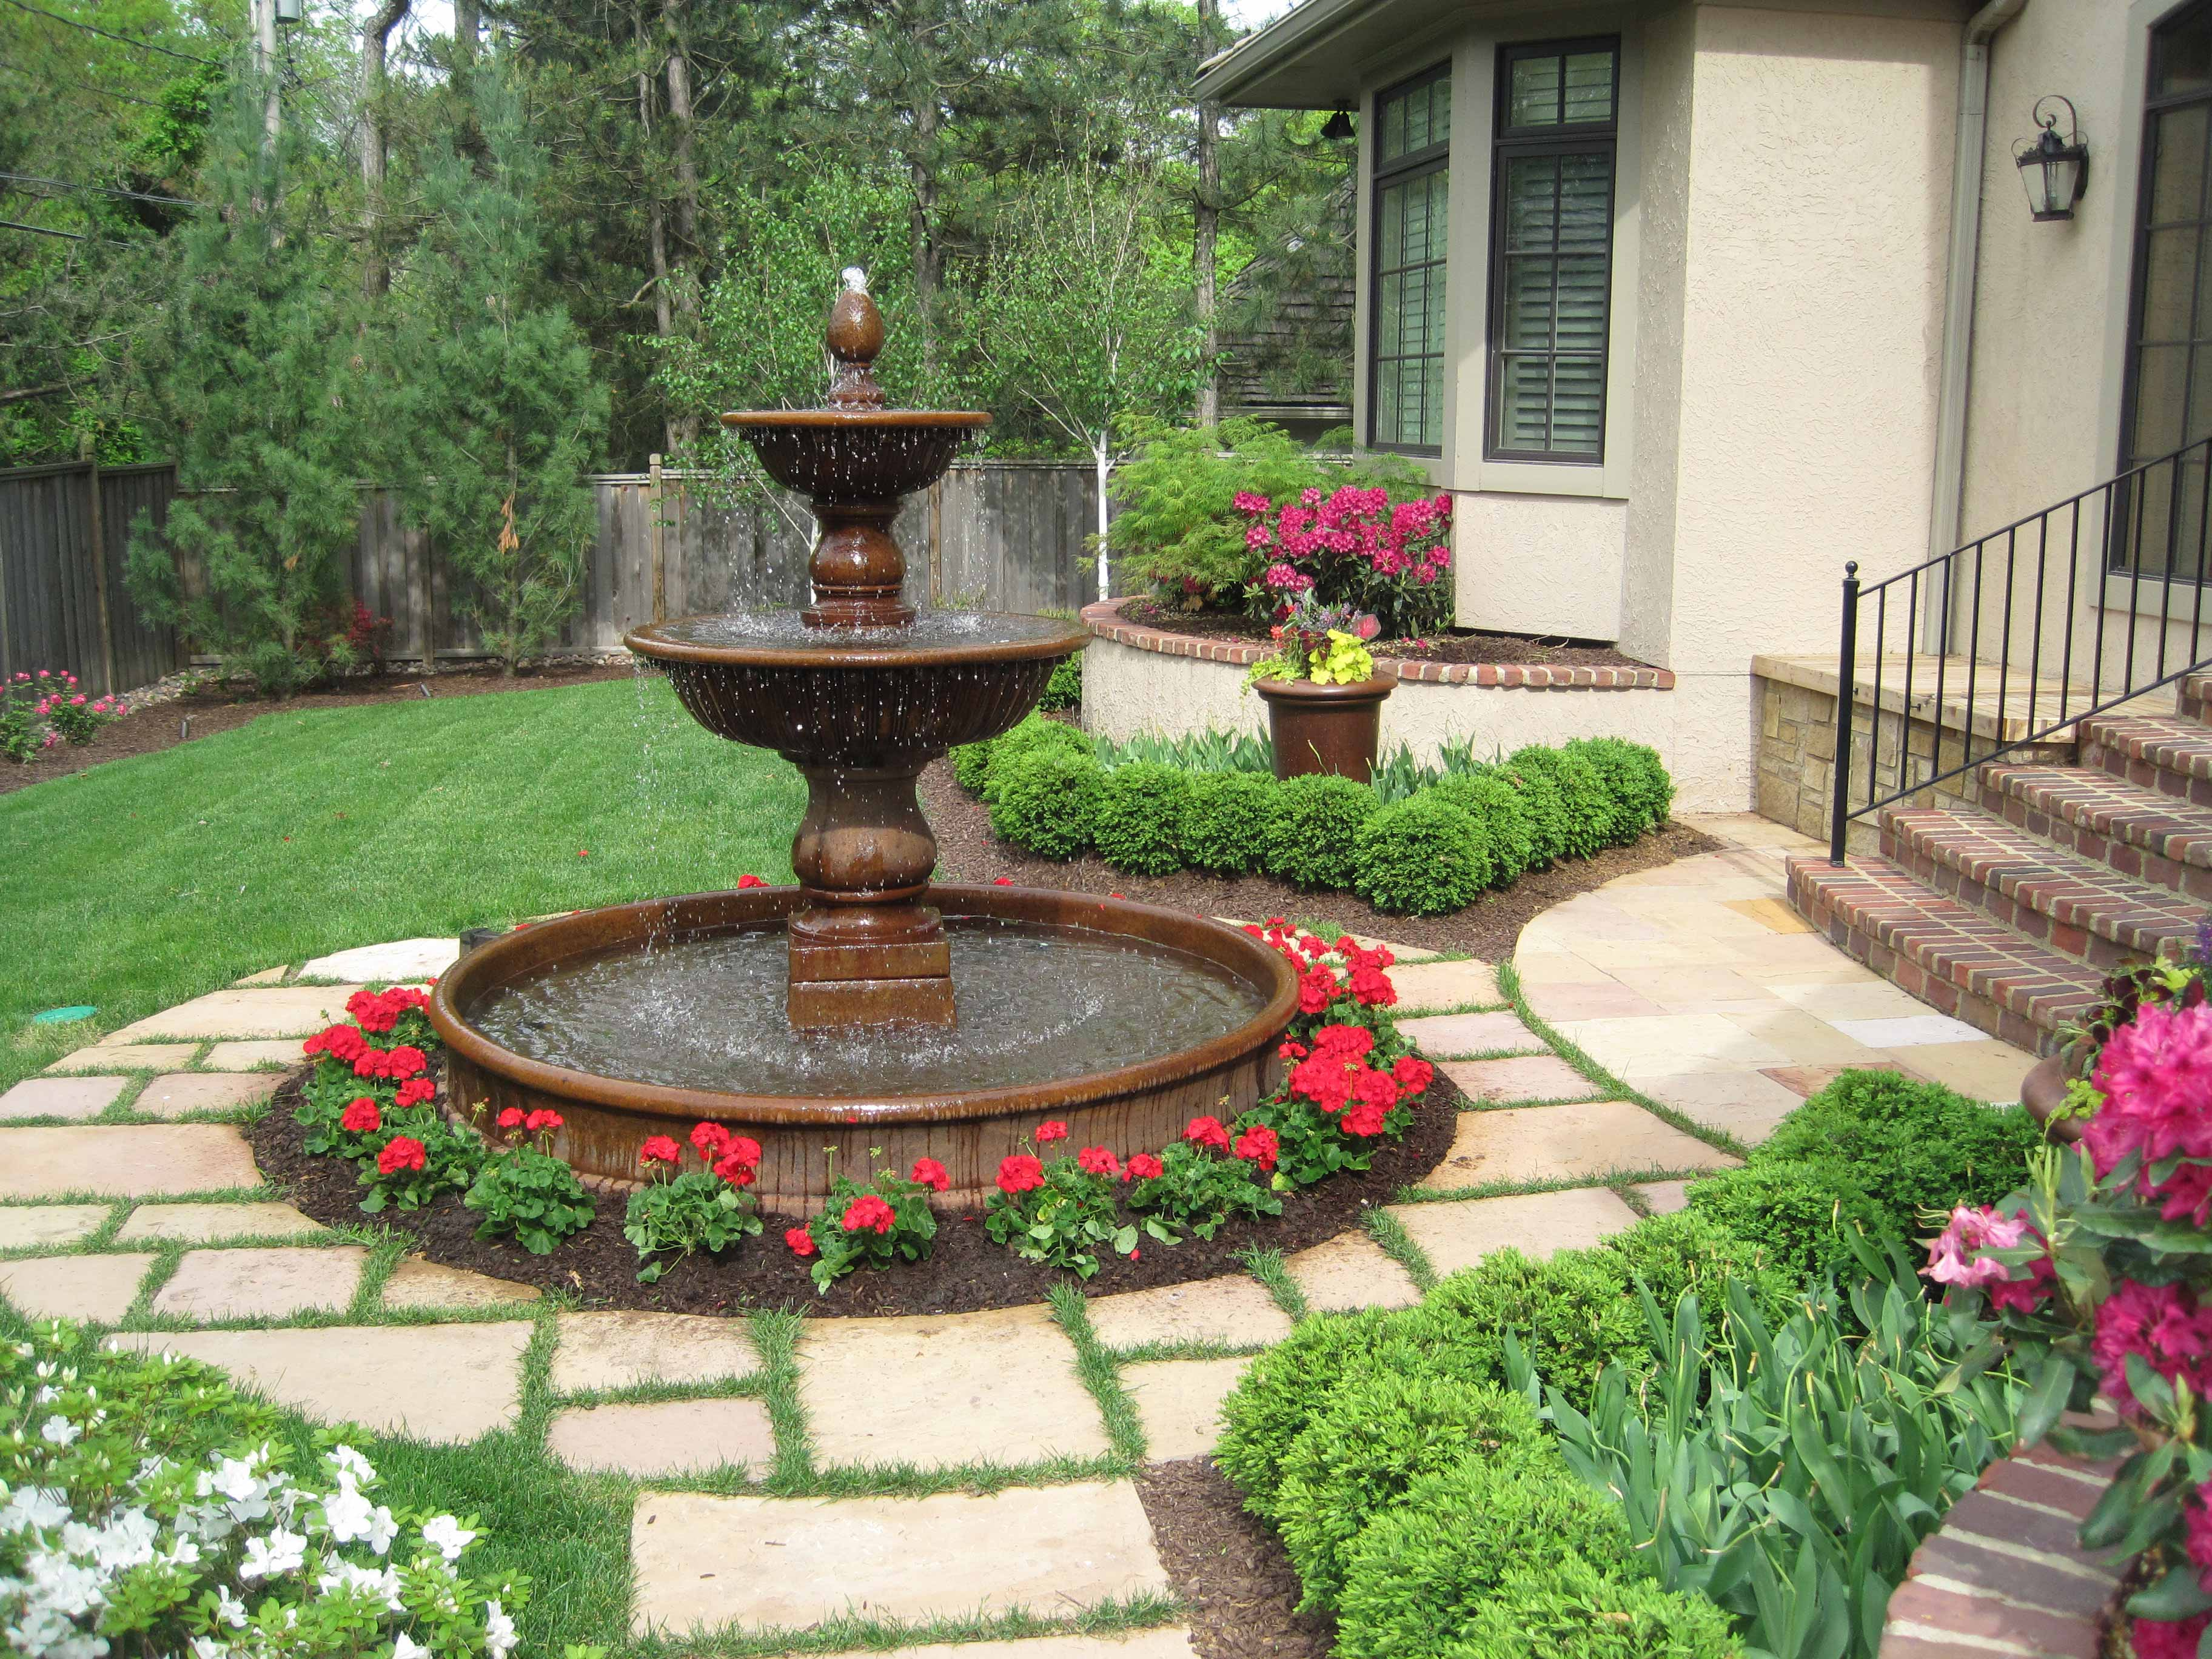 Custom Garden Fountains & Statuary in Kansas City at ... on Backyard Landscaping Near Me id=81910